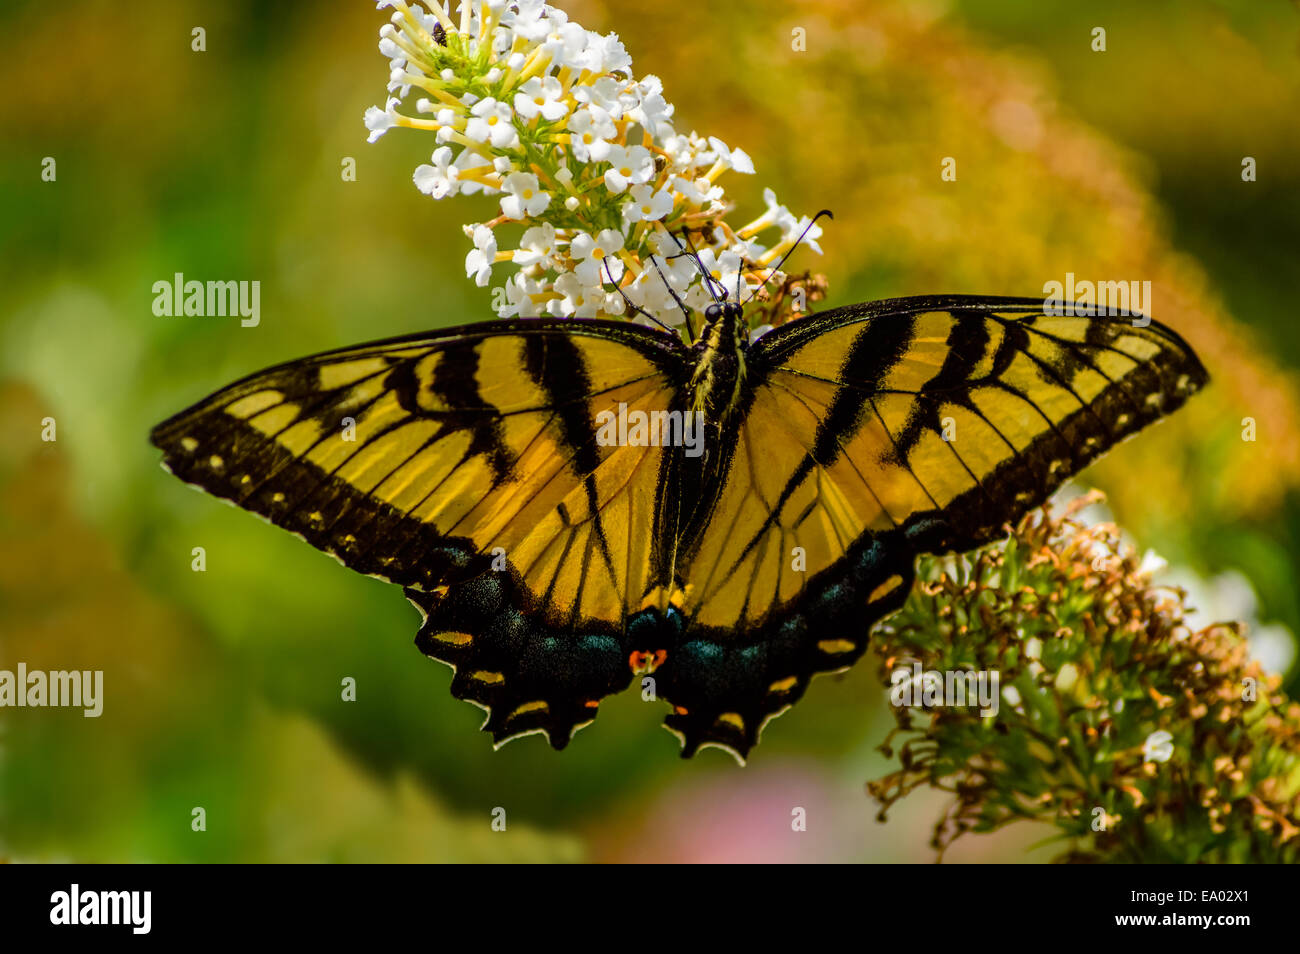 gold and black butterfly with wings open on a white flower - Stock Image